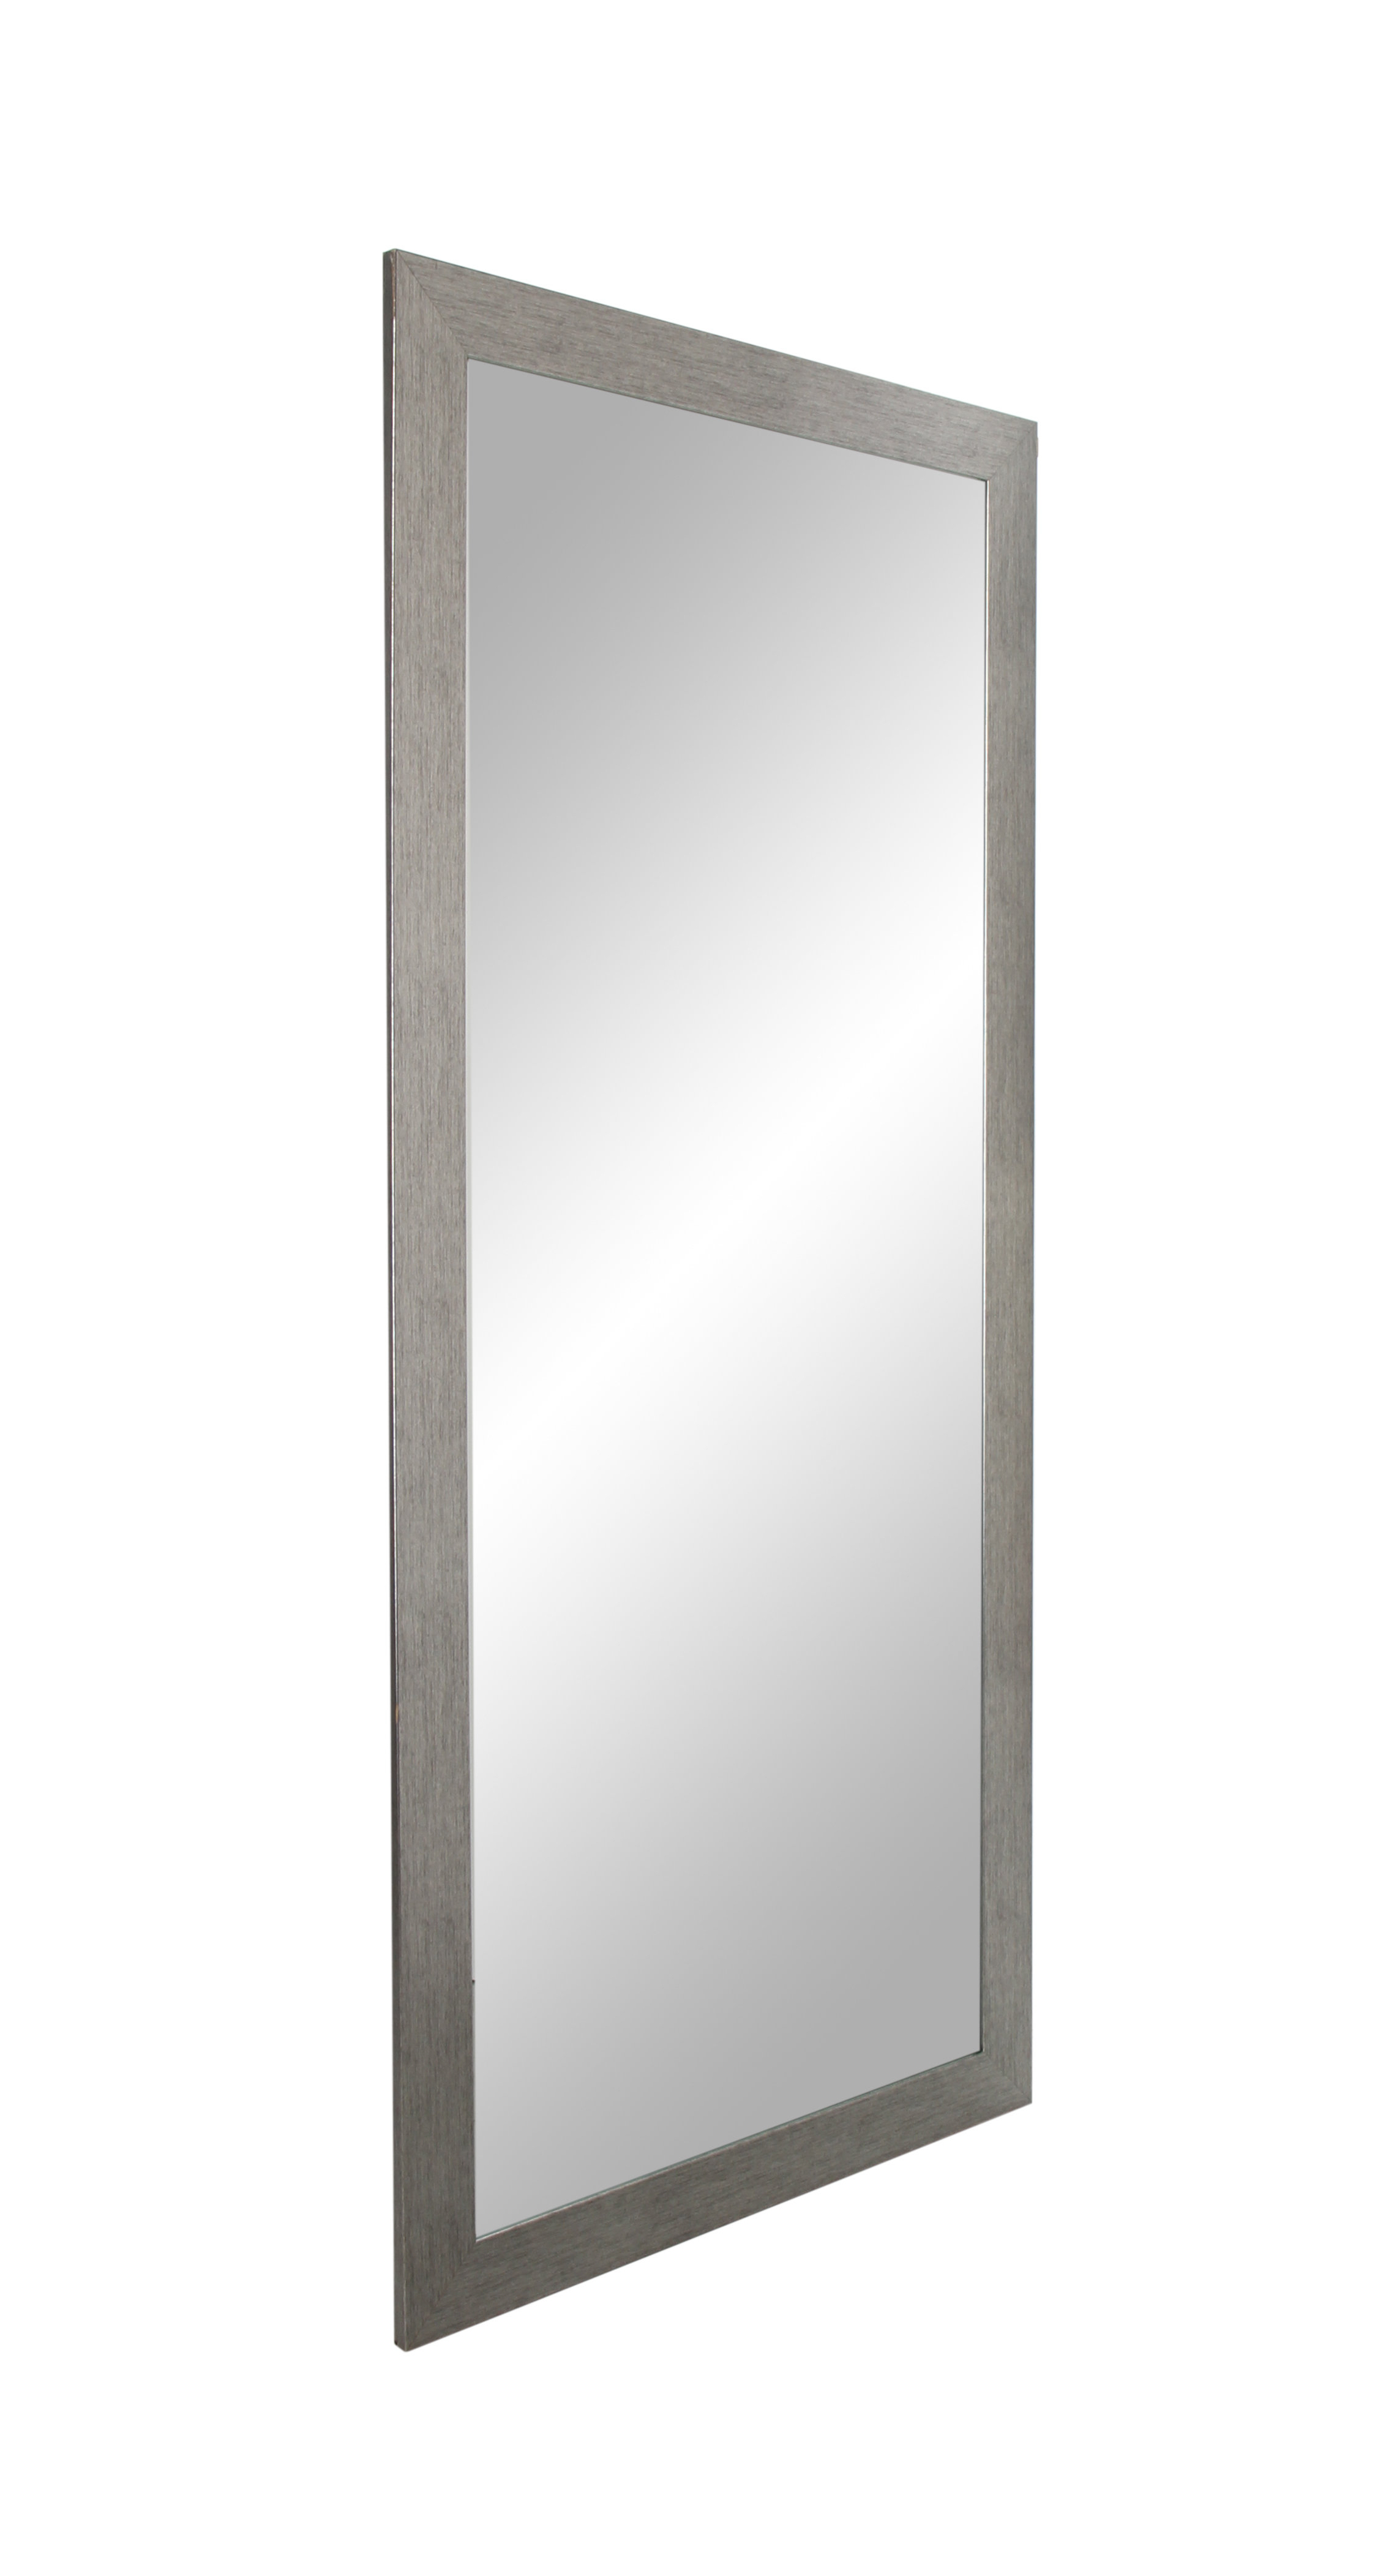 Widely Used Modern & Contemporary Full Length Mirrors Regarding Giannone Grain Full Modern & Contemporary Length Mirror (View 20 of 20)